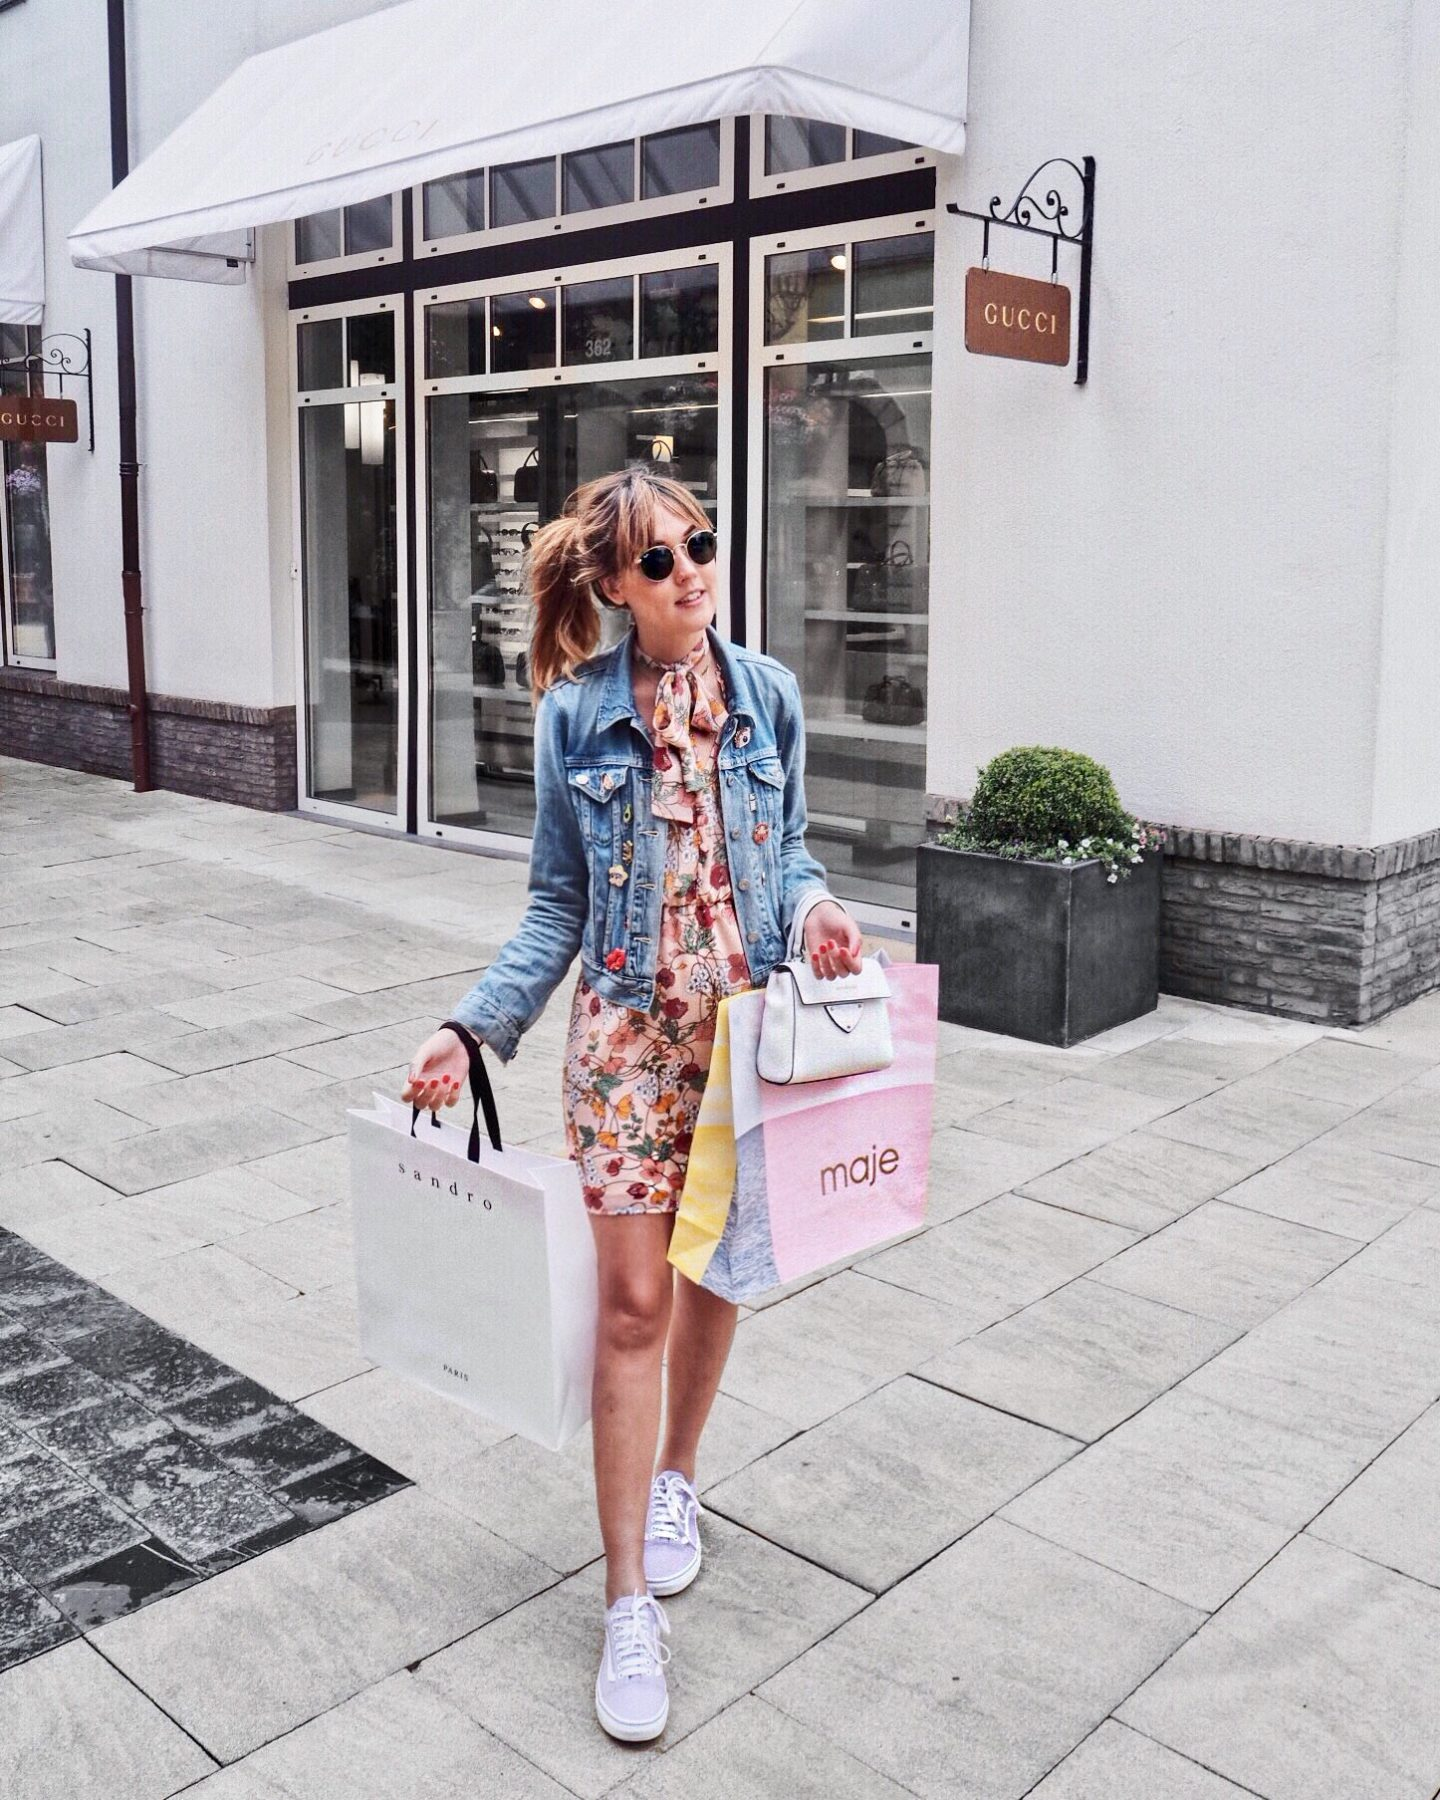 Girls shopping trip at McArthurGlen Designer Outlet Roermond